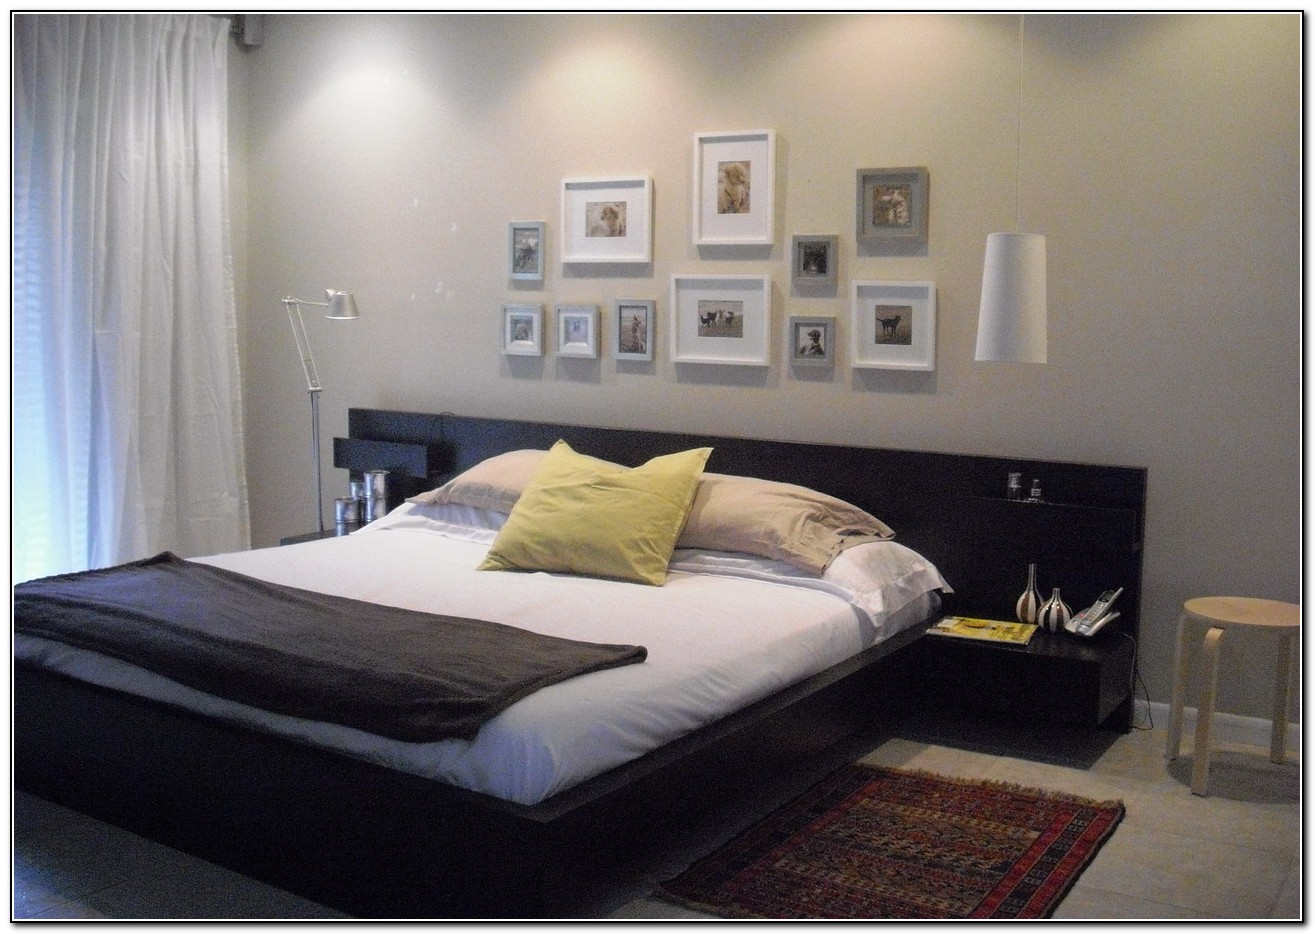 Ikea Malm Bed With Side Tables